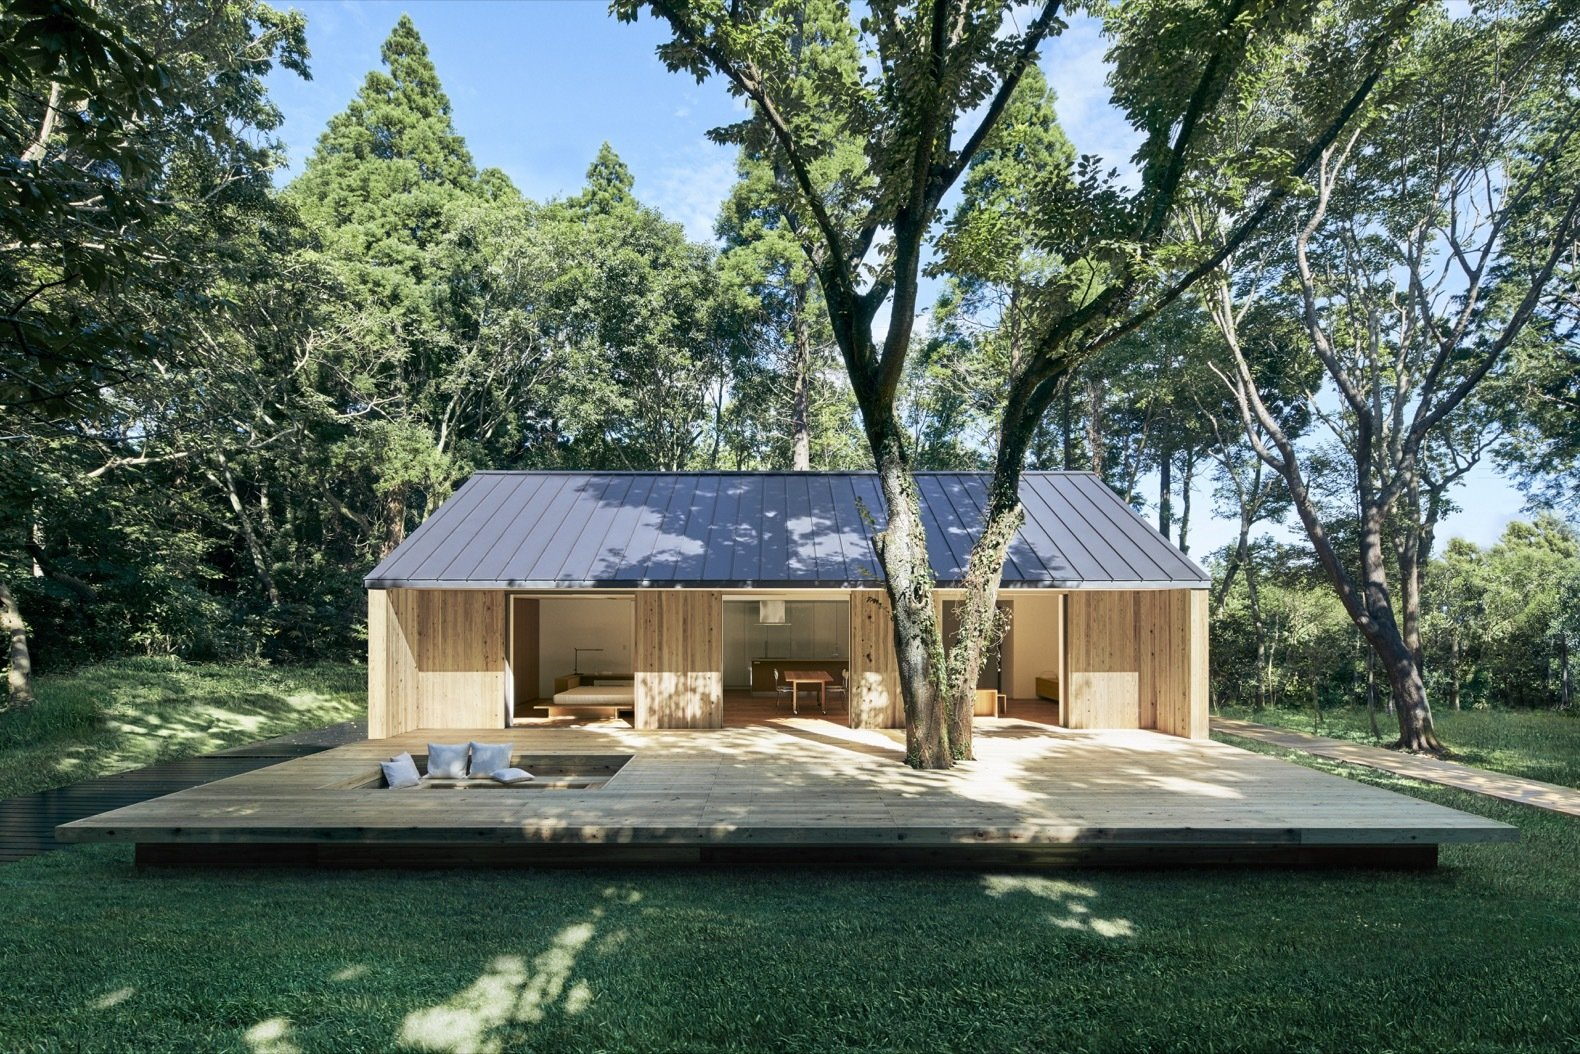 Single-story timber prefab home on grassy lawn.